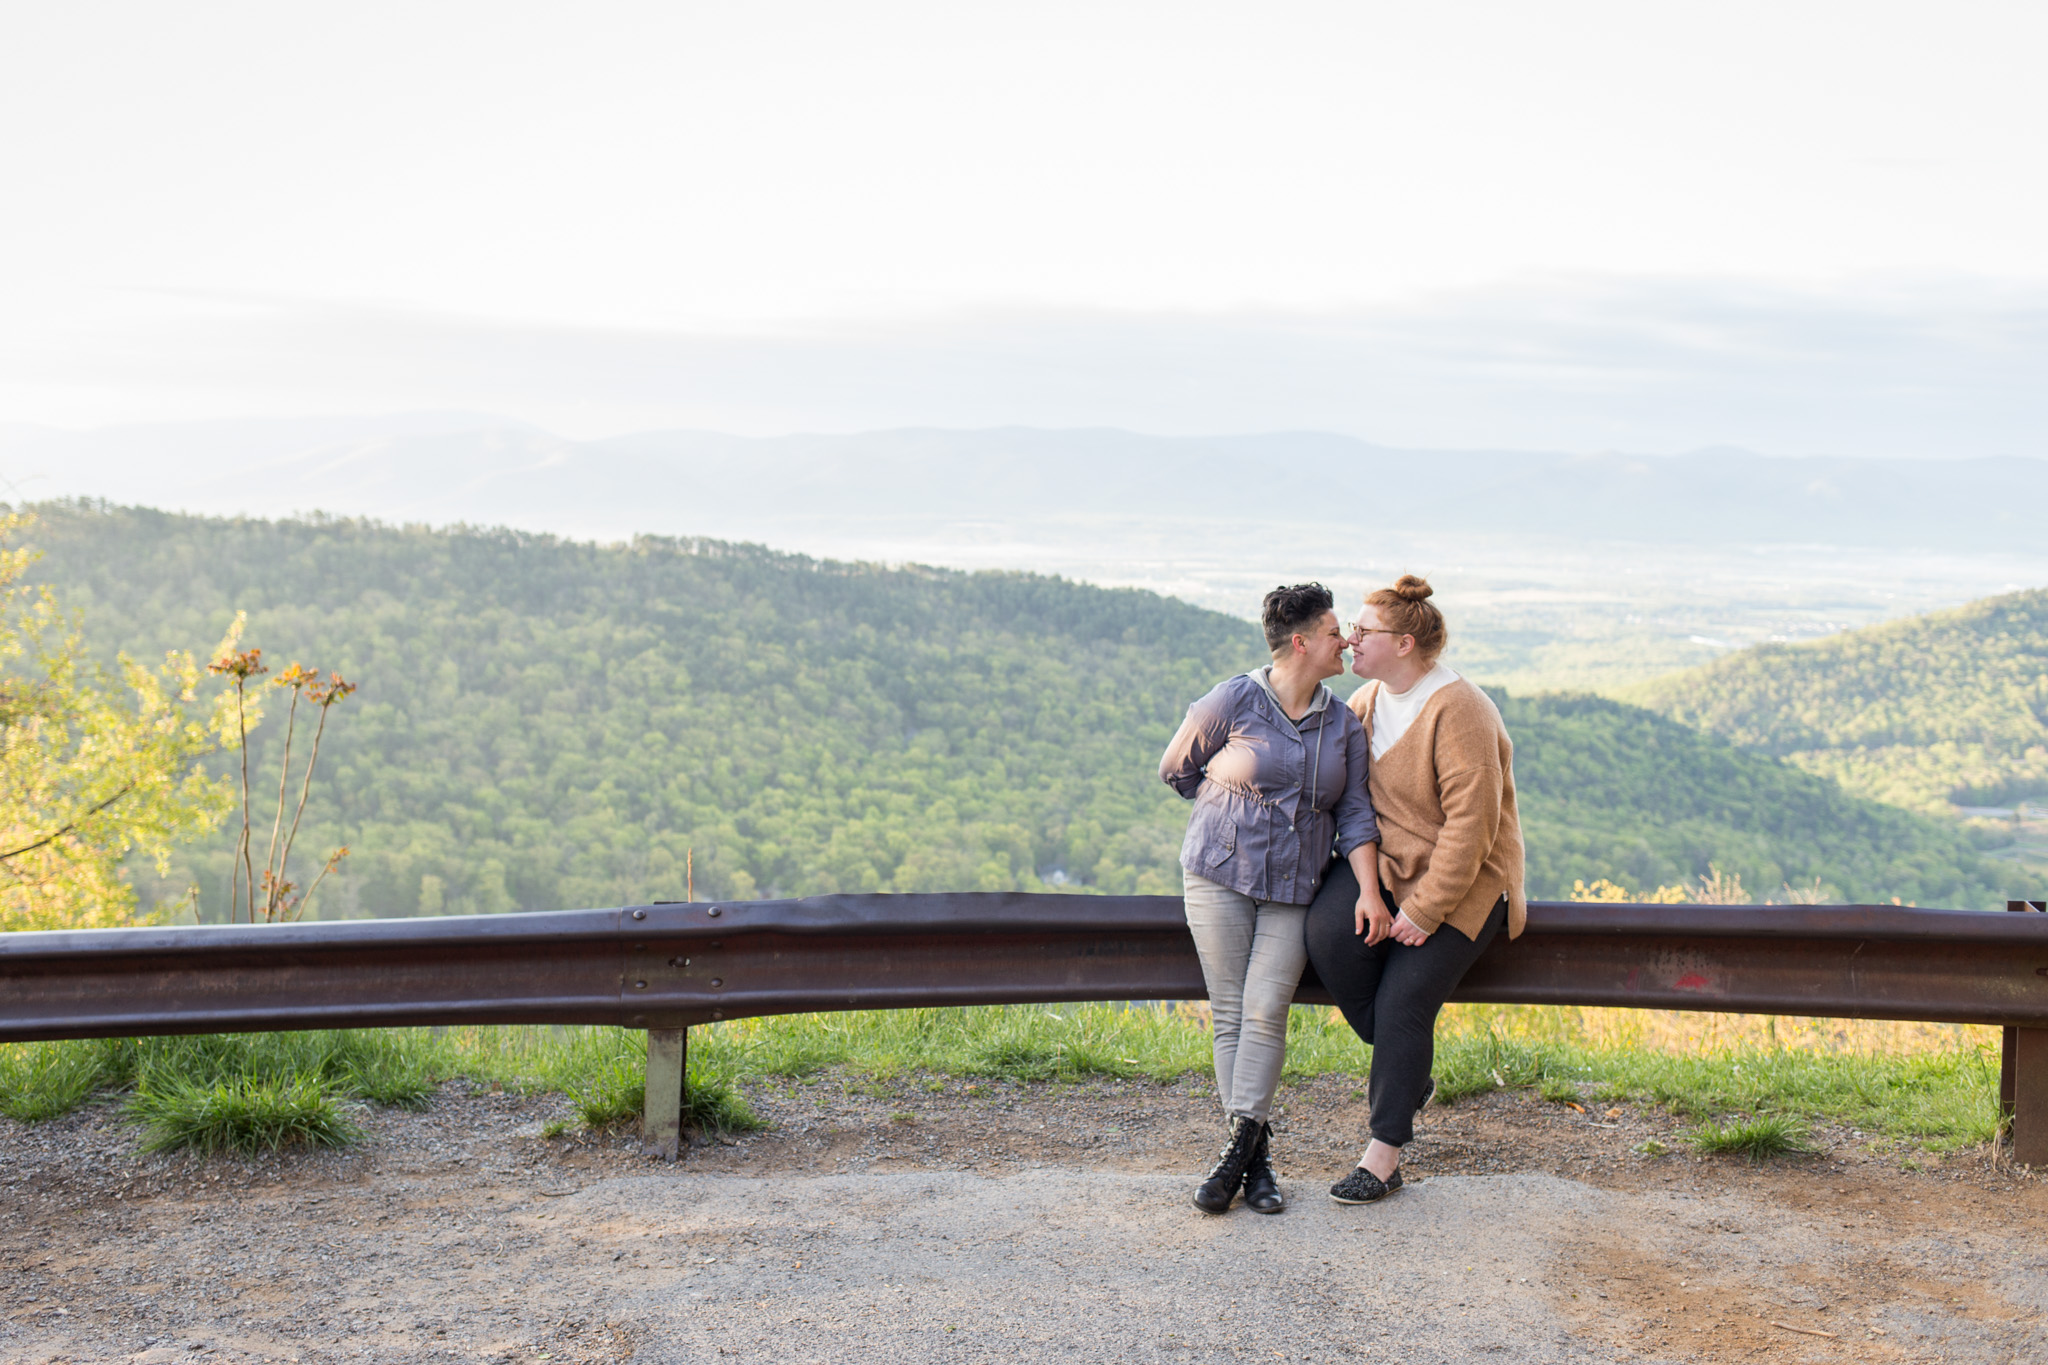 LightCreative_201904_AlexanBecky_Raleigh_Proposal_Photography_037_blog.jpg